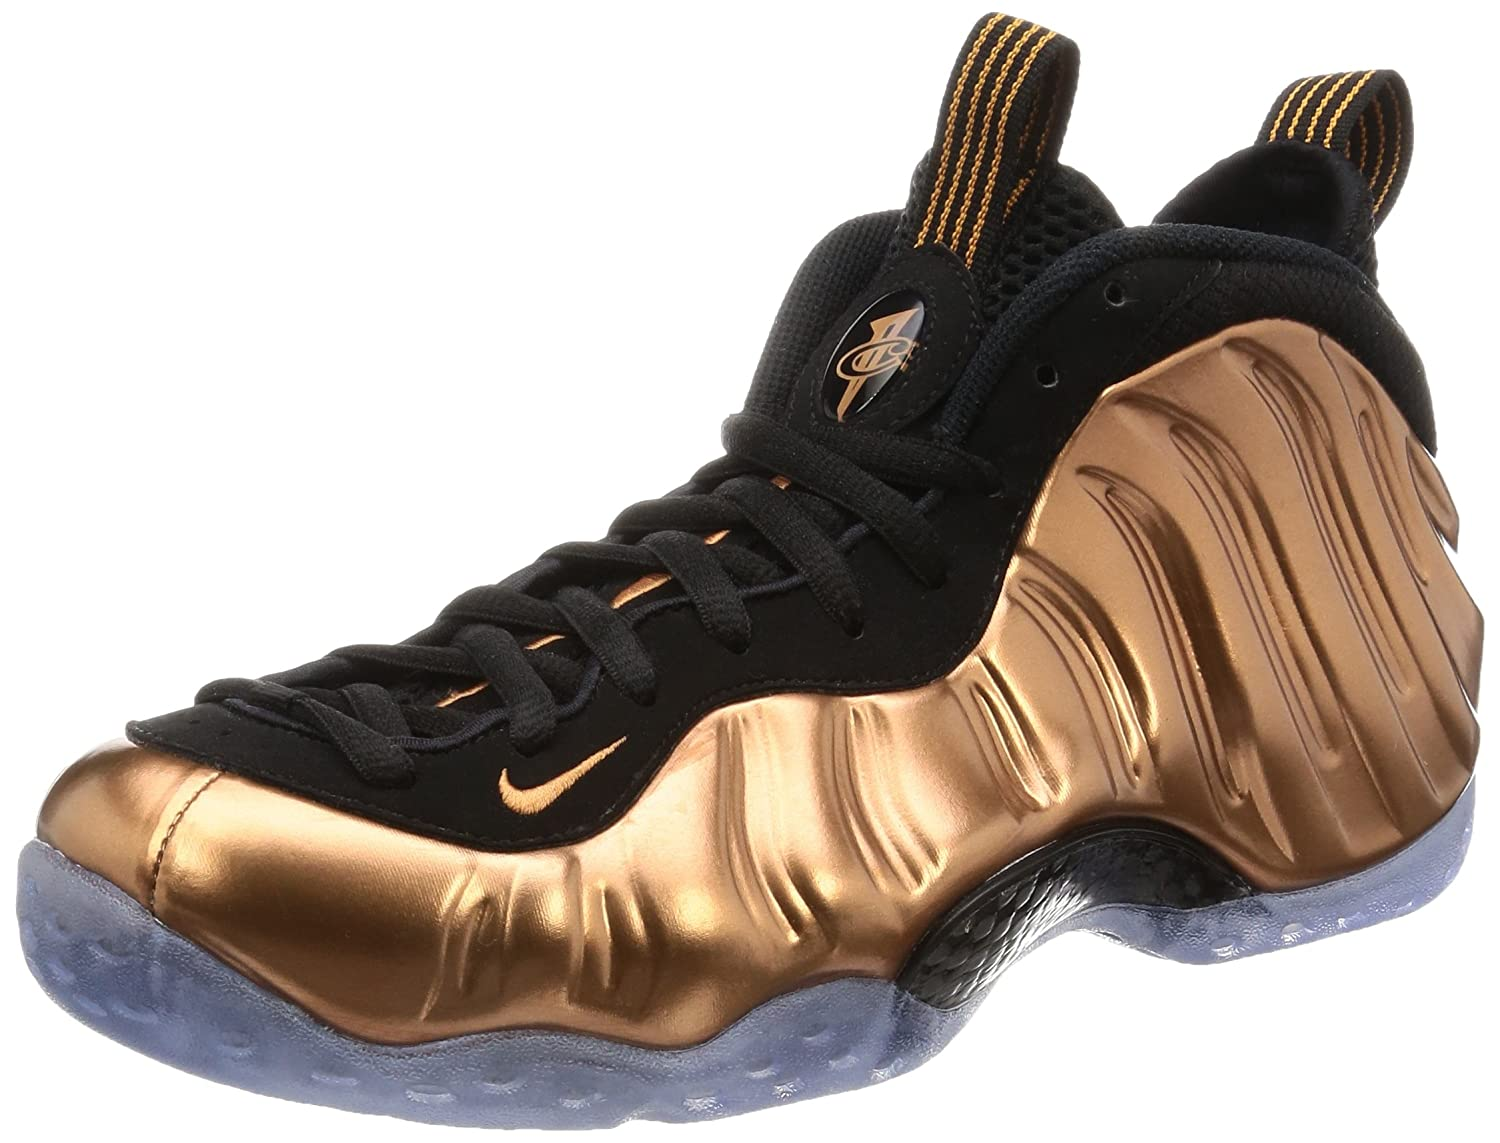 87fa5e11588 Nike Men s Air Foamposite One Basketball Shoe